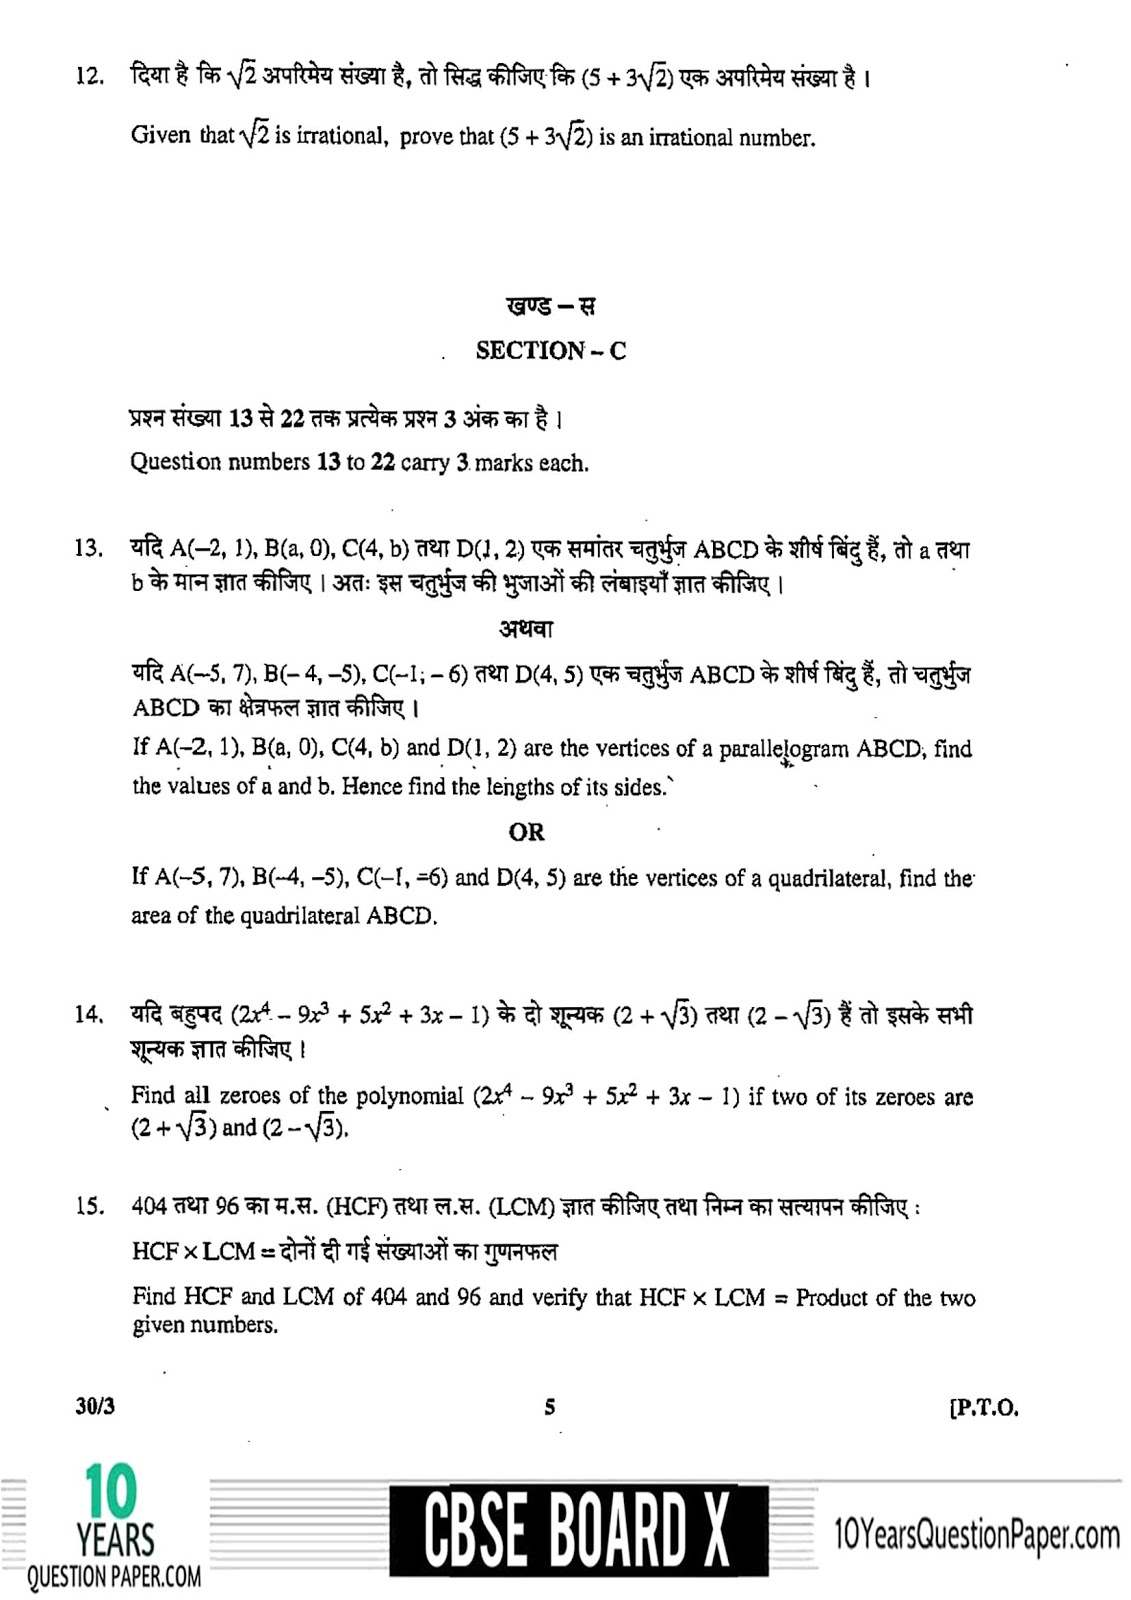 CBSE Board 2018 Maths Question paper Class 10 Page-05